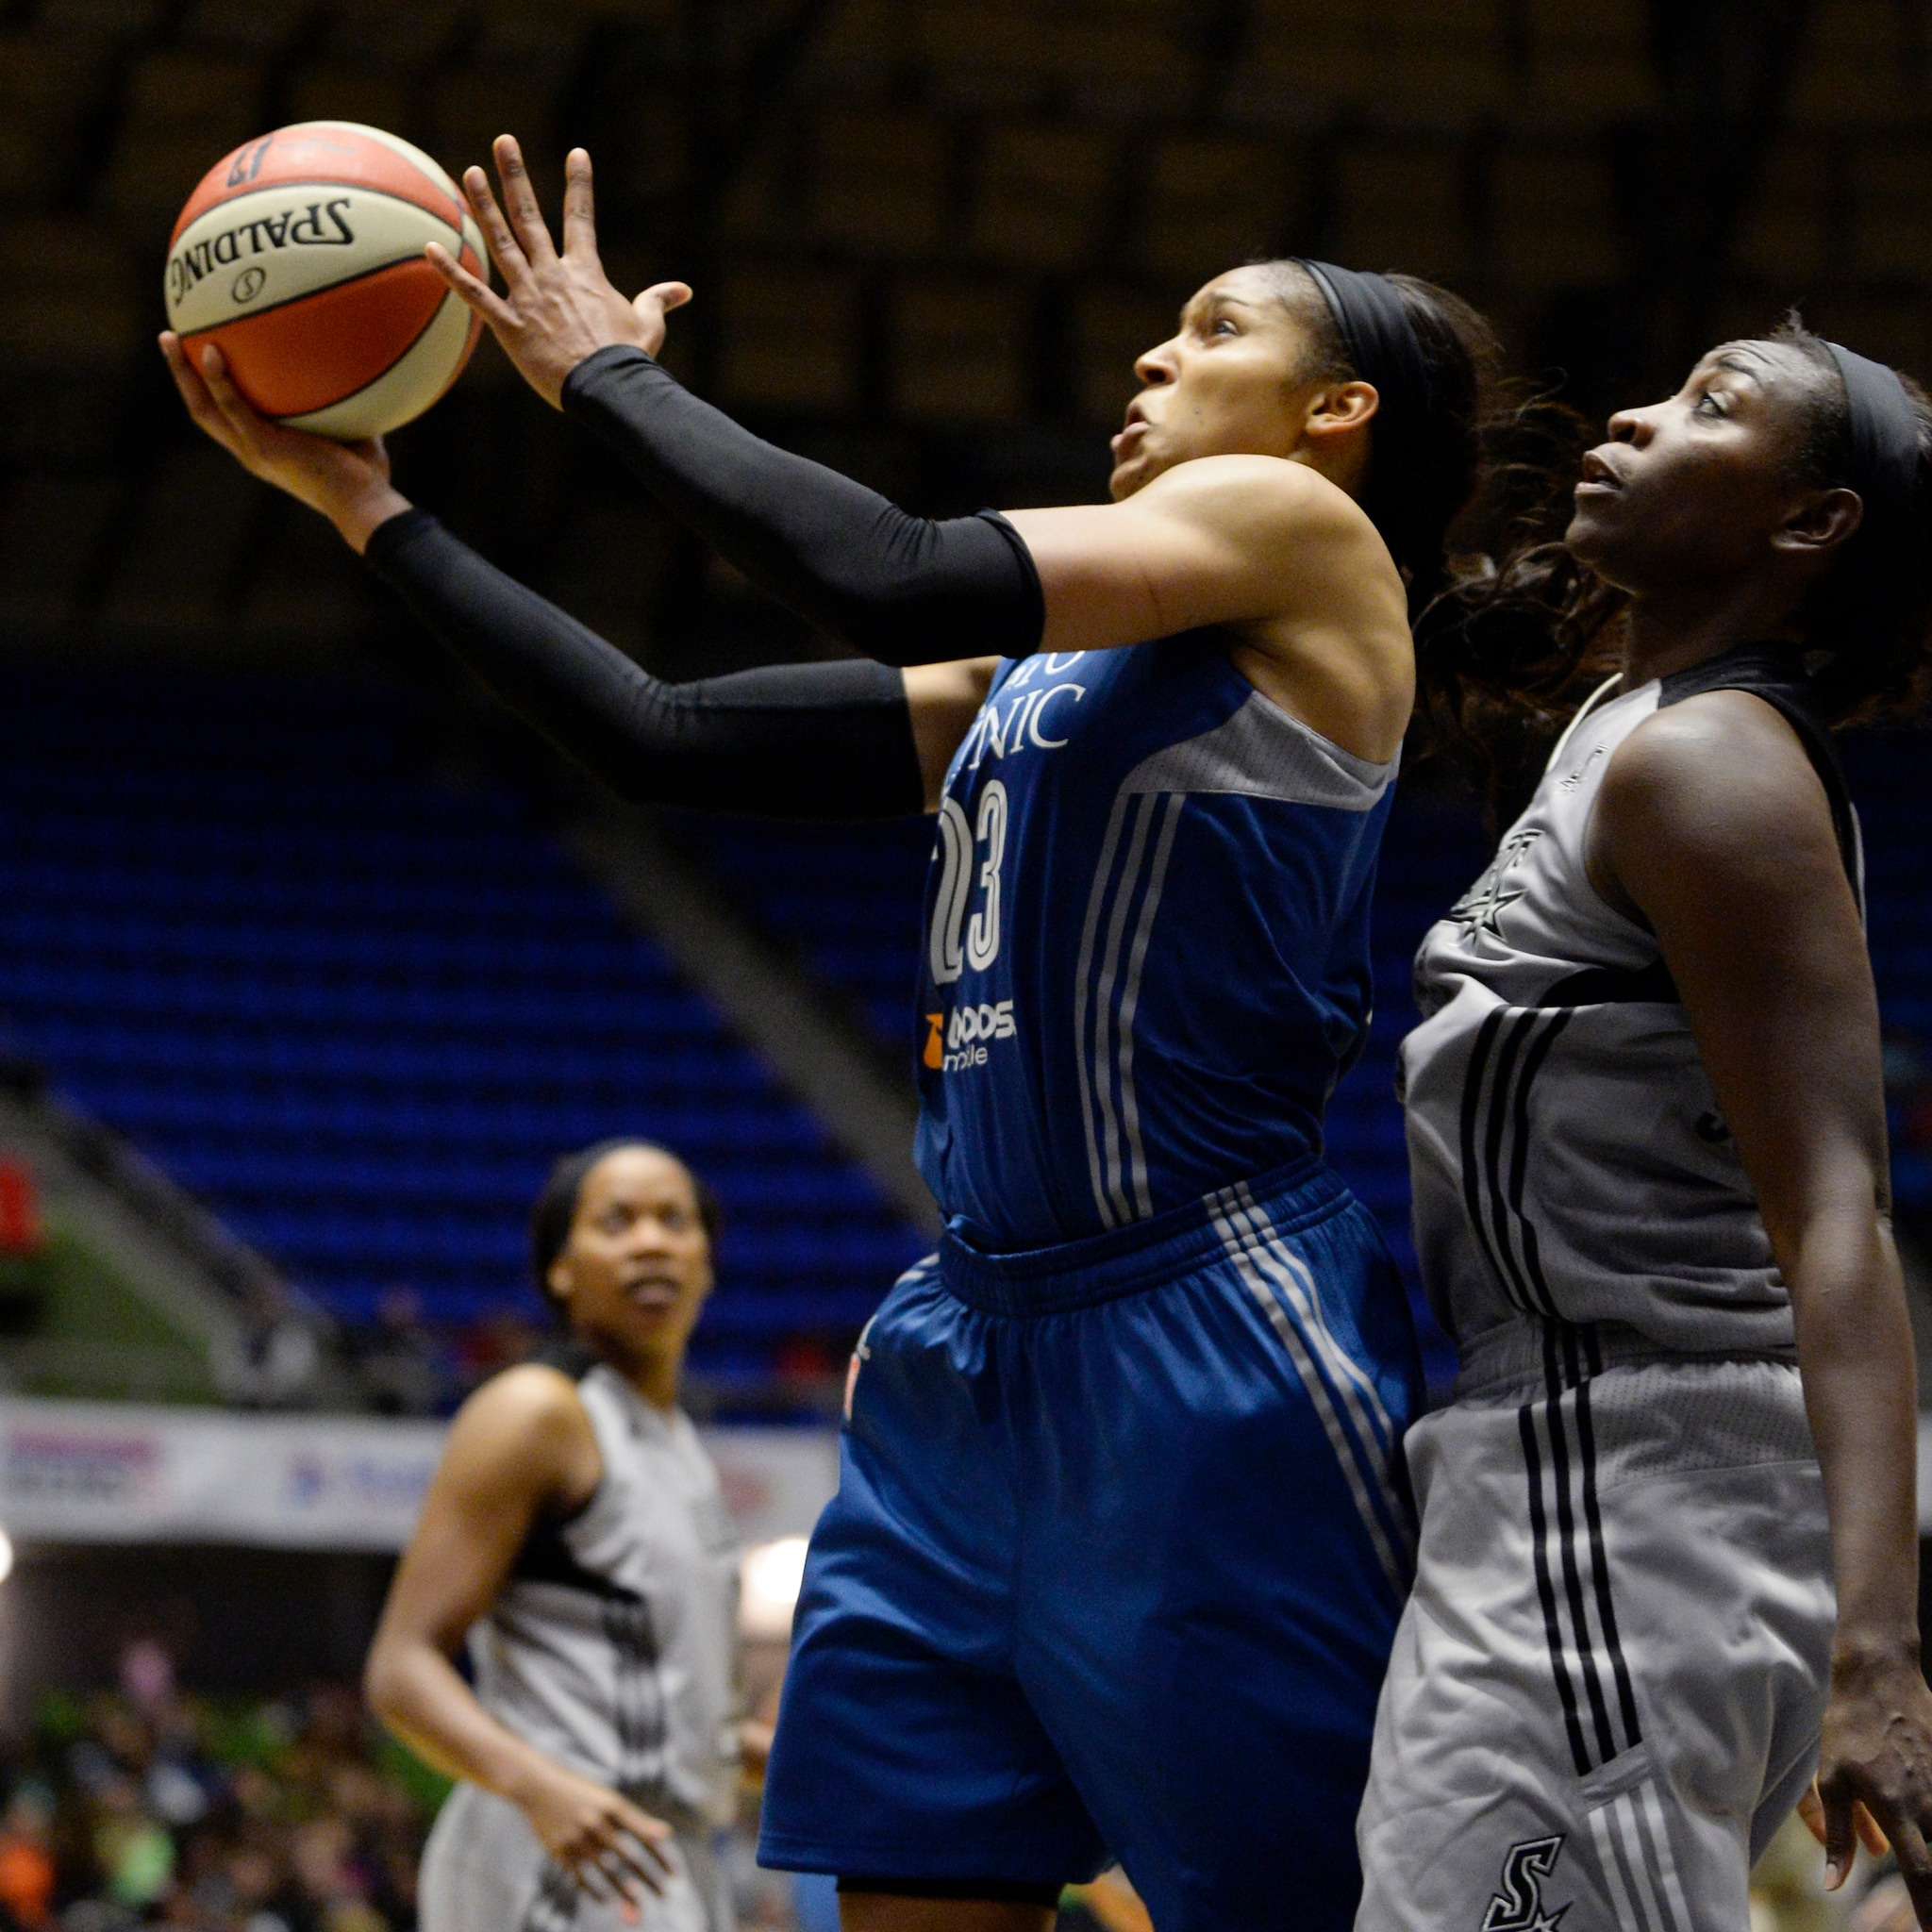 Lynx forward Maya Moore goes up for two of her 14 points. Moore also had four rebounds, two assists and five steals.